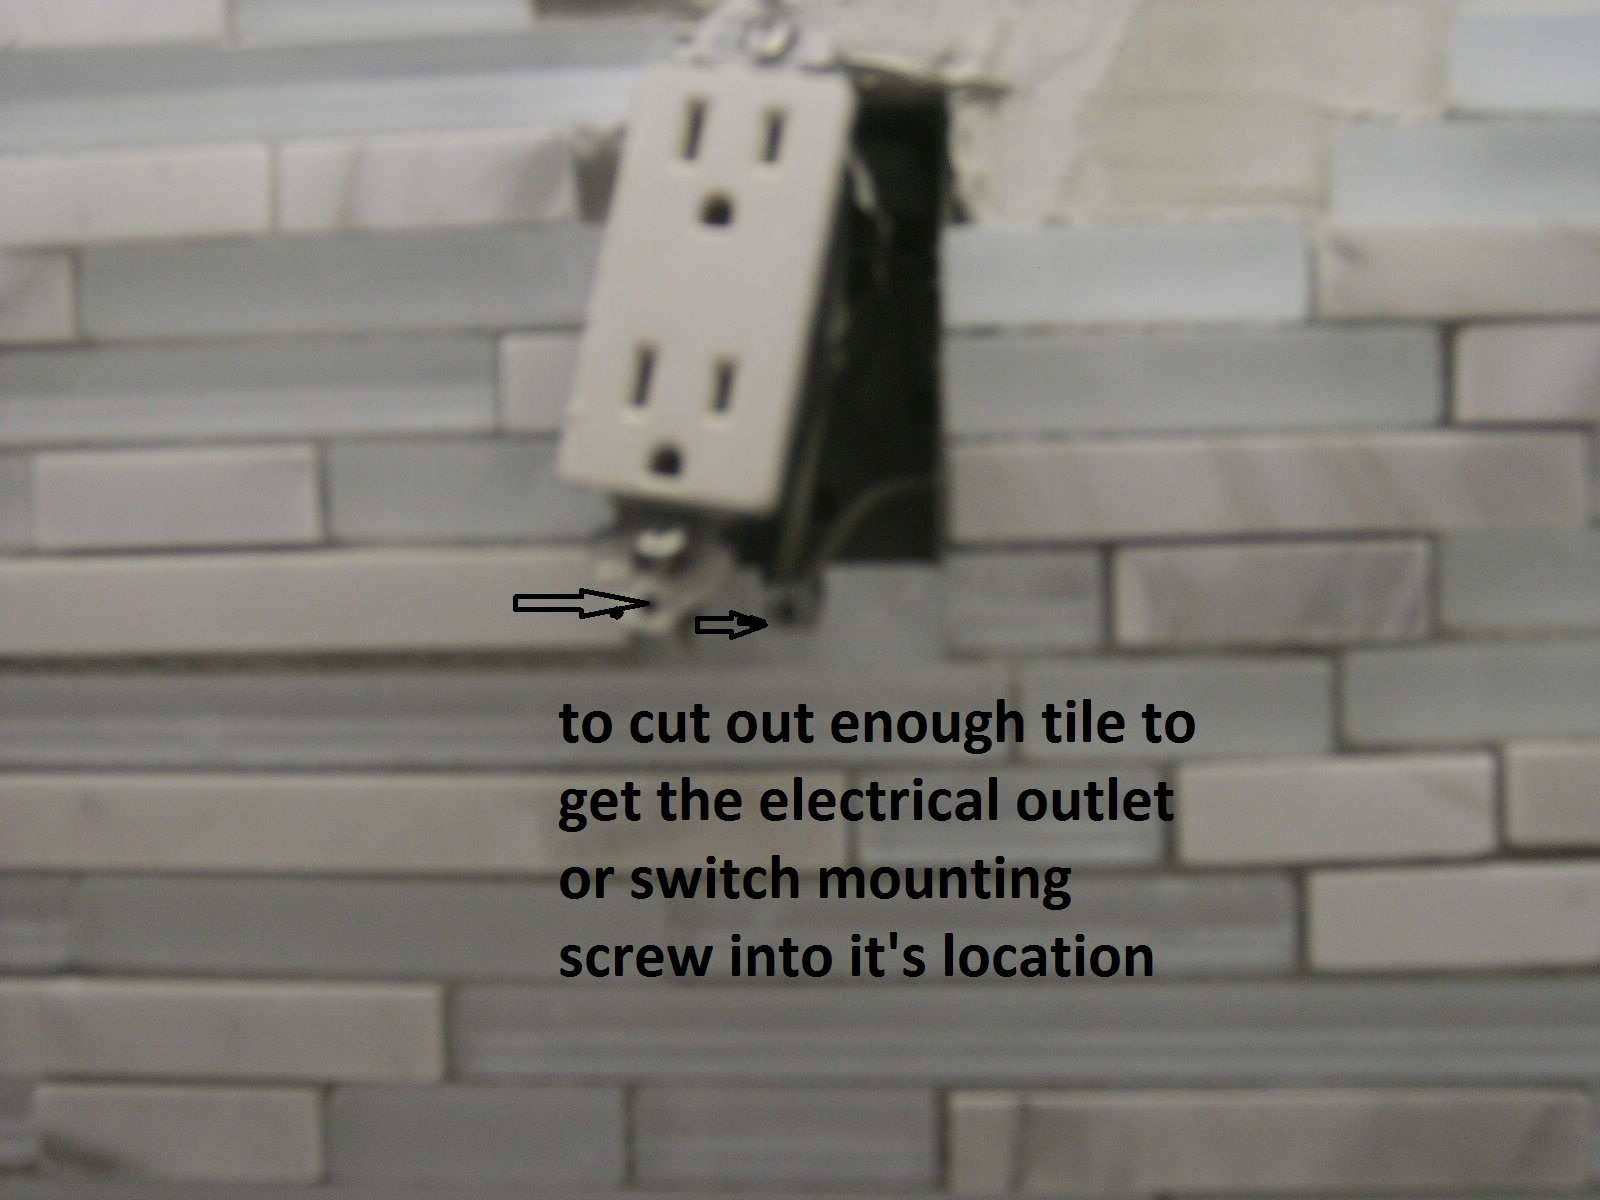 Tips For Tiling Around Electrical Outlets